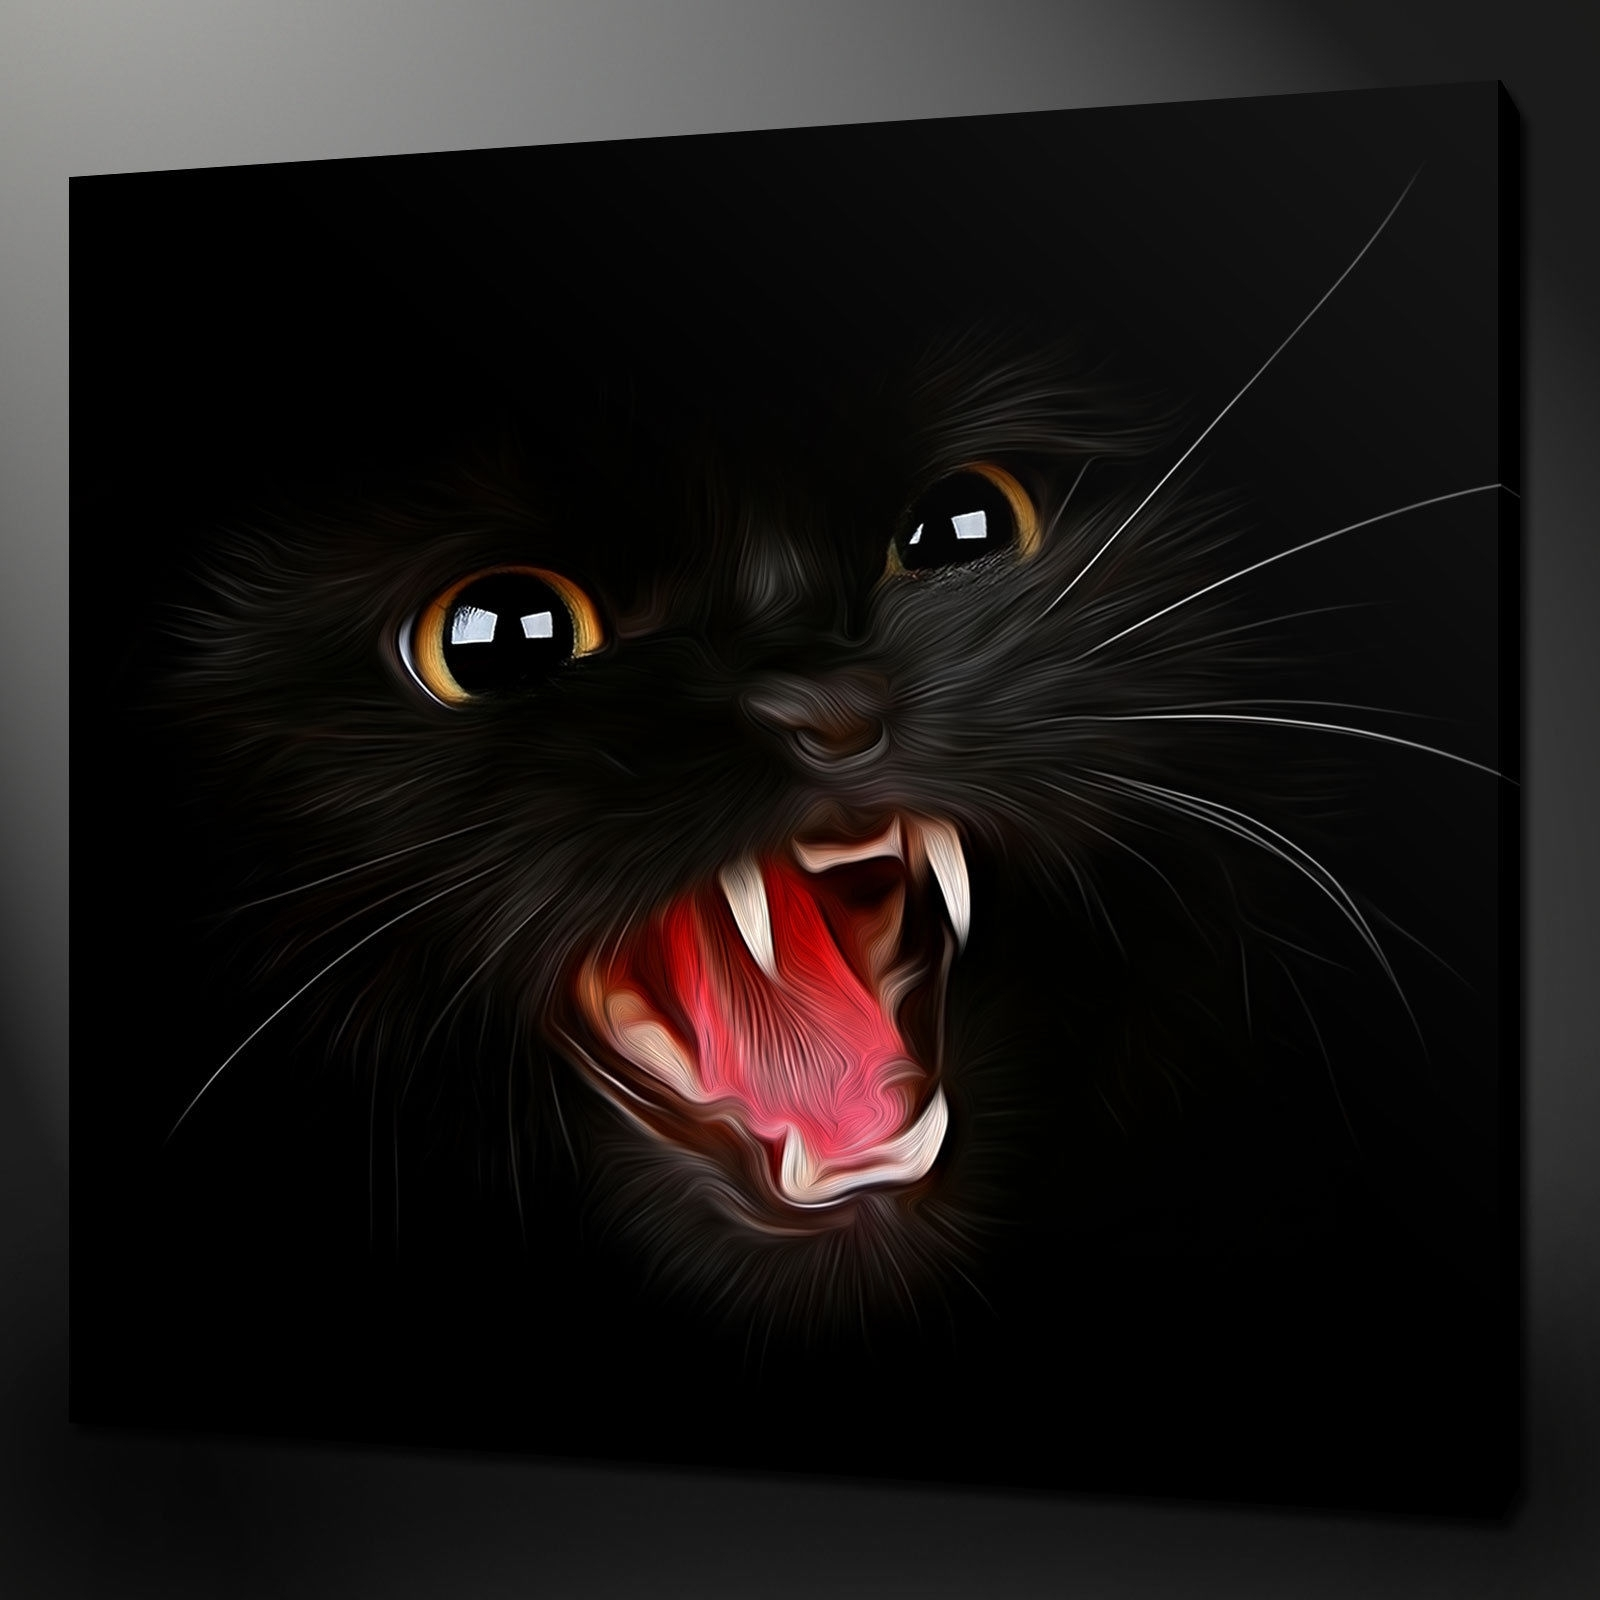 Canvas Print Pictures. High Quality, Handmade, Free Next Day Delivery. intended for Cat Canvas Wall Art (Image 8 of 20)